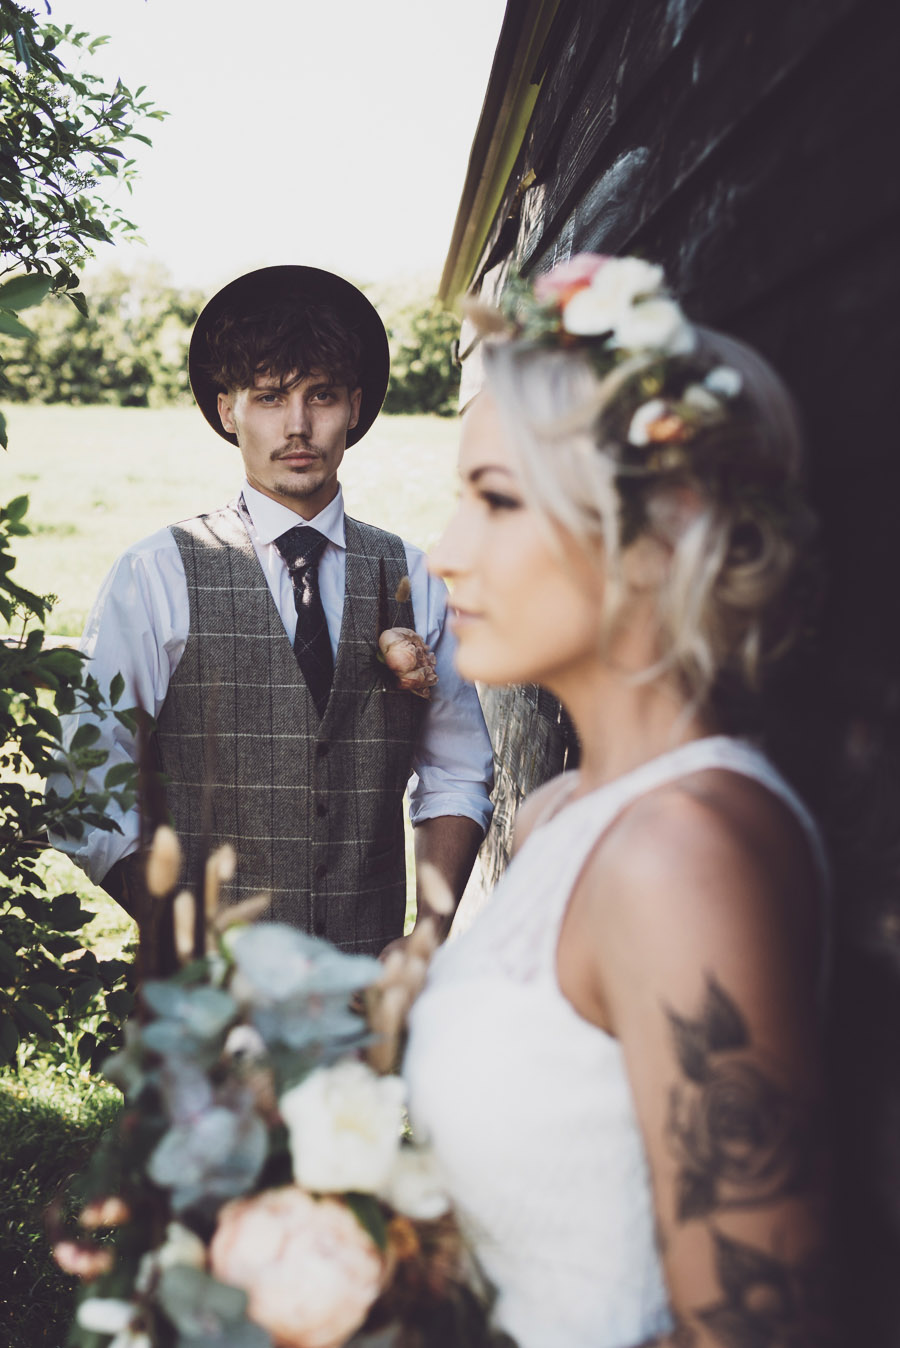 Alternative farm wedding ideas at Little Fant Farm with Tom Cullen Photography (1)